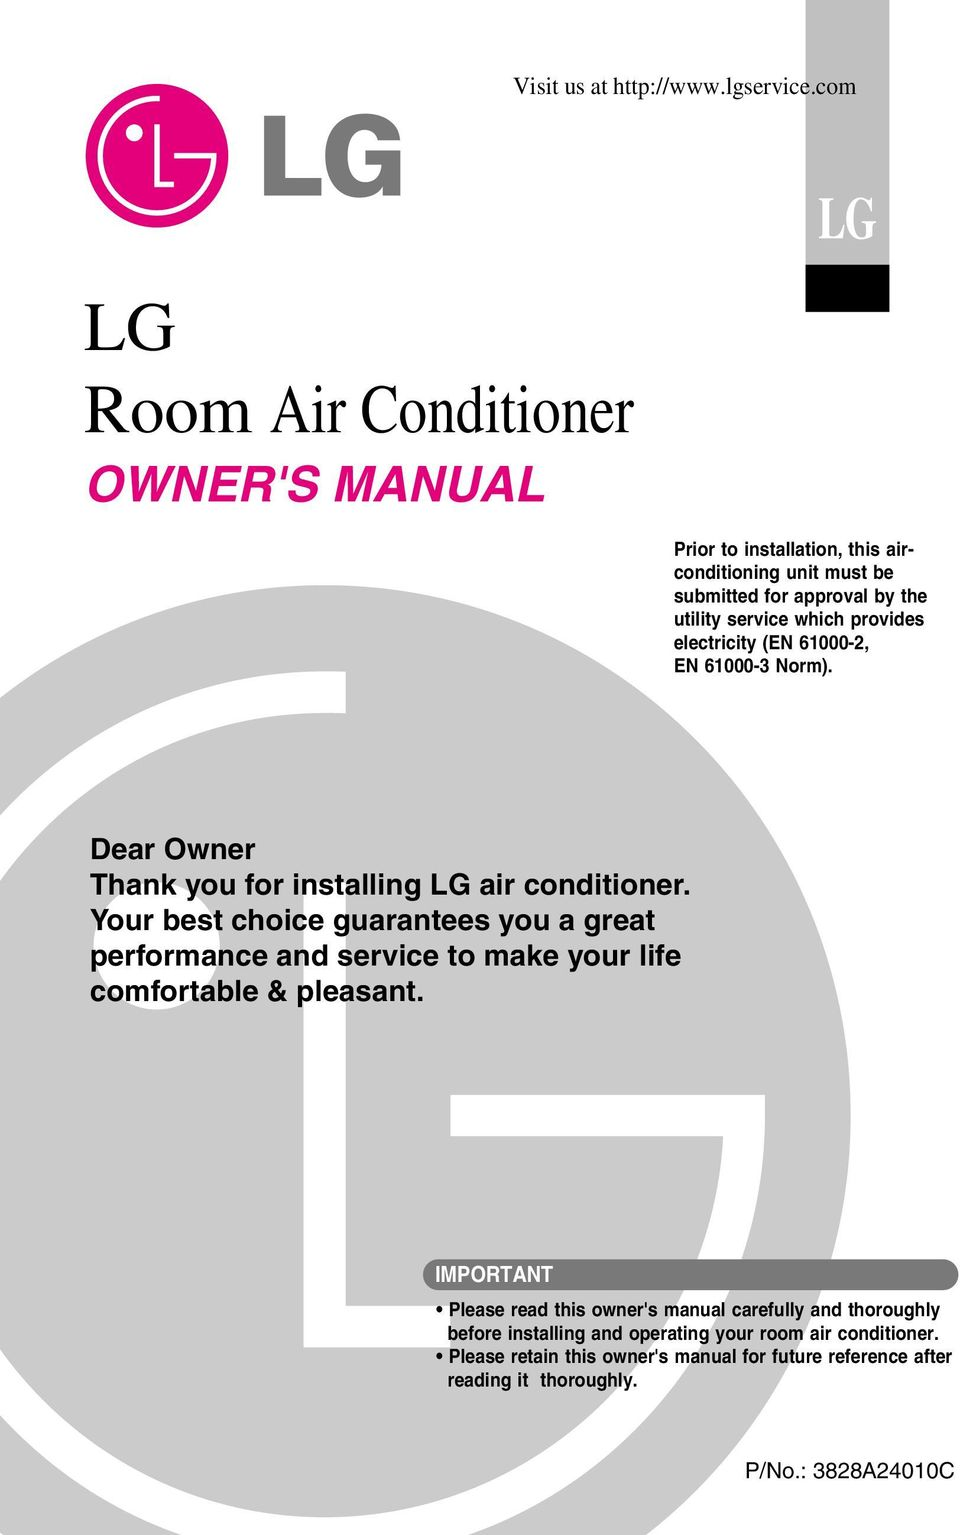 lg room air conditioner owner s manual pdf rh docplayer net Home Depot LG Air Conditioner Wall Mounted Air Conditioners LG